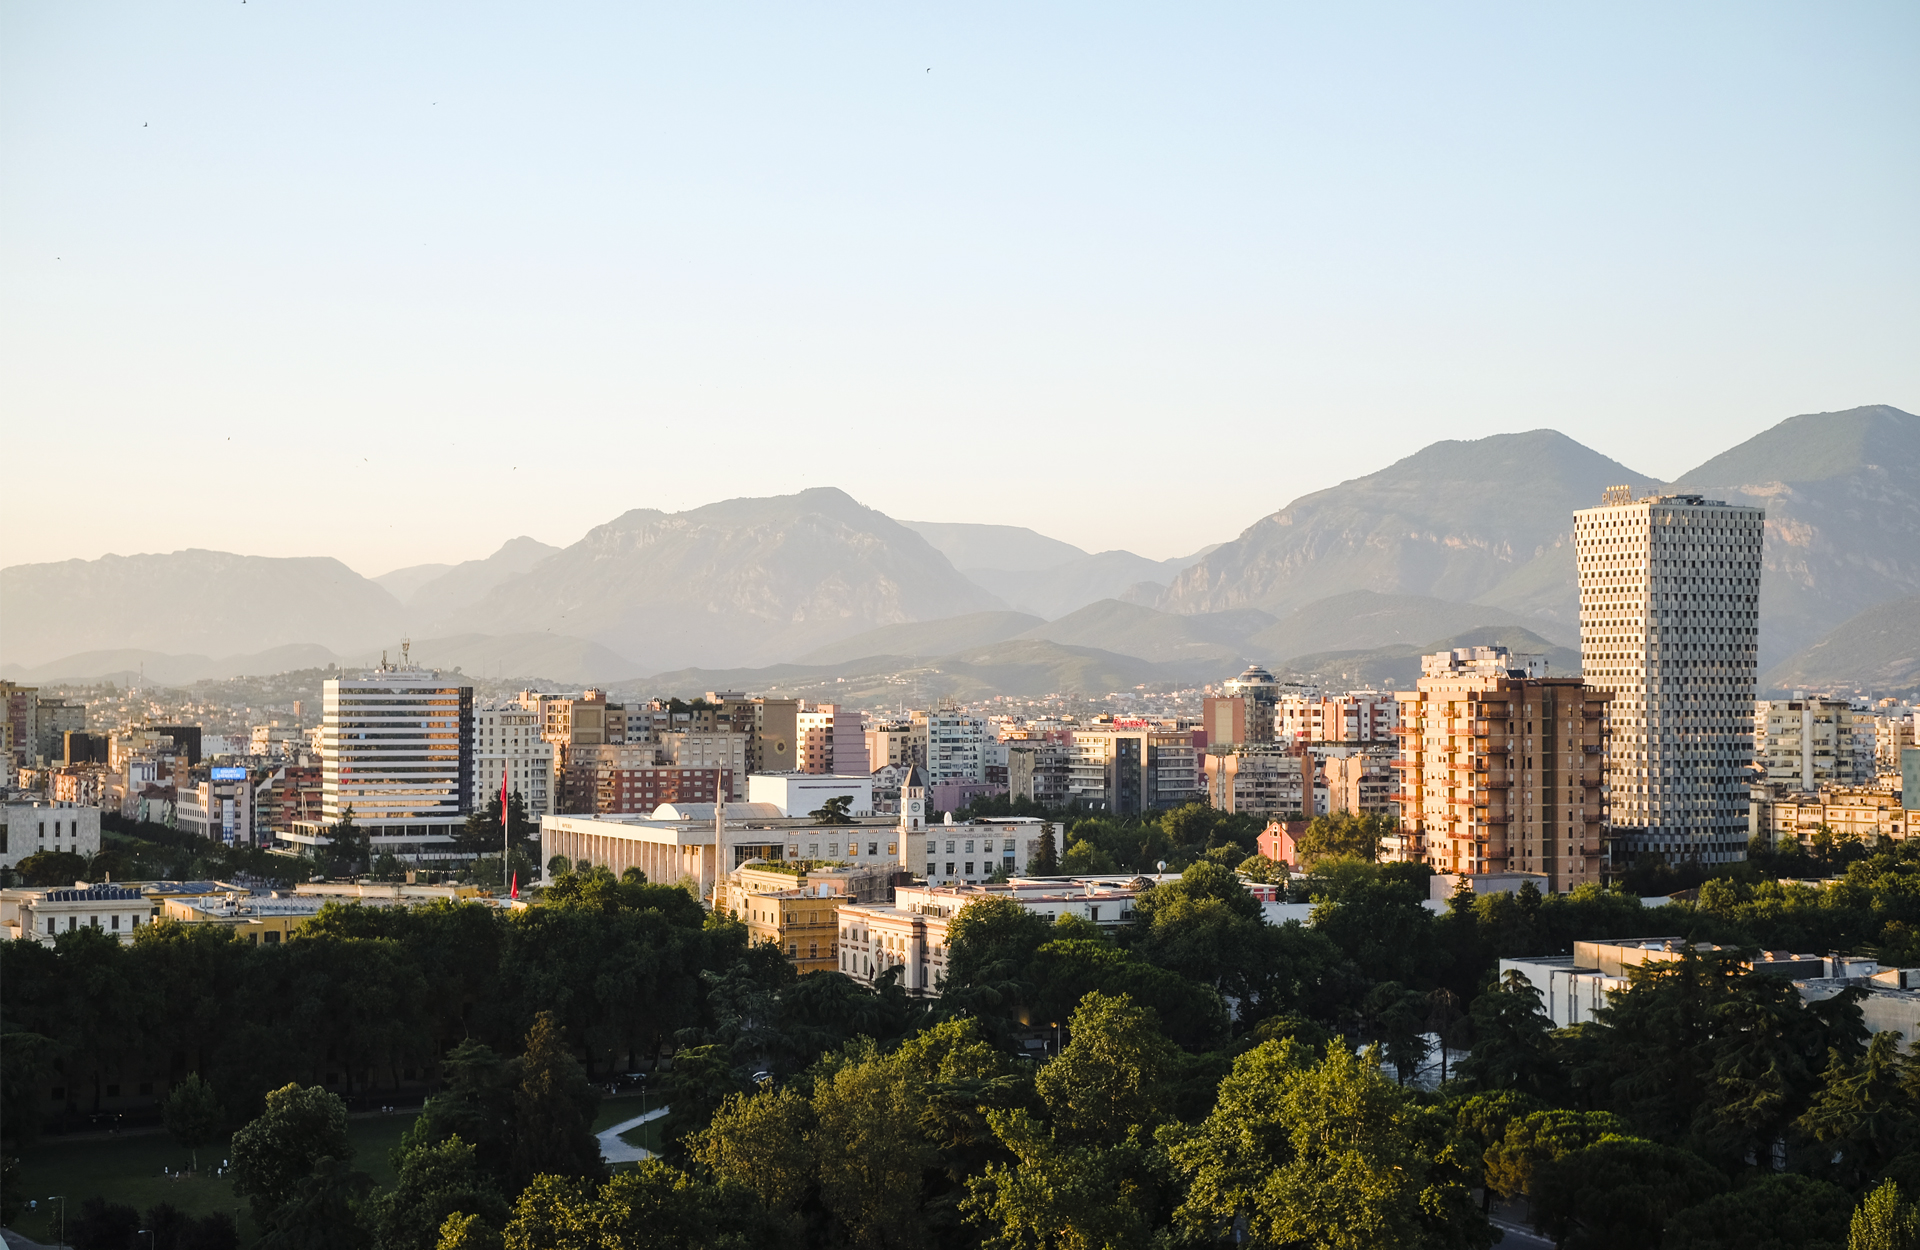 Tirana's skyline from a roof top with mountains in the back.